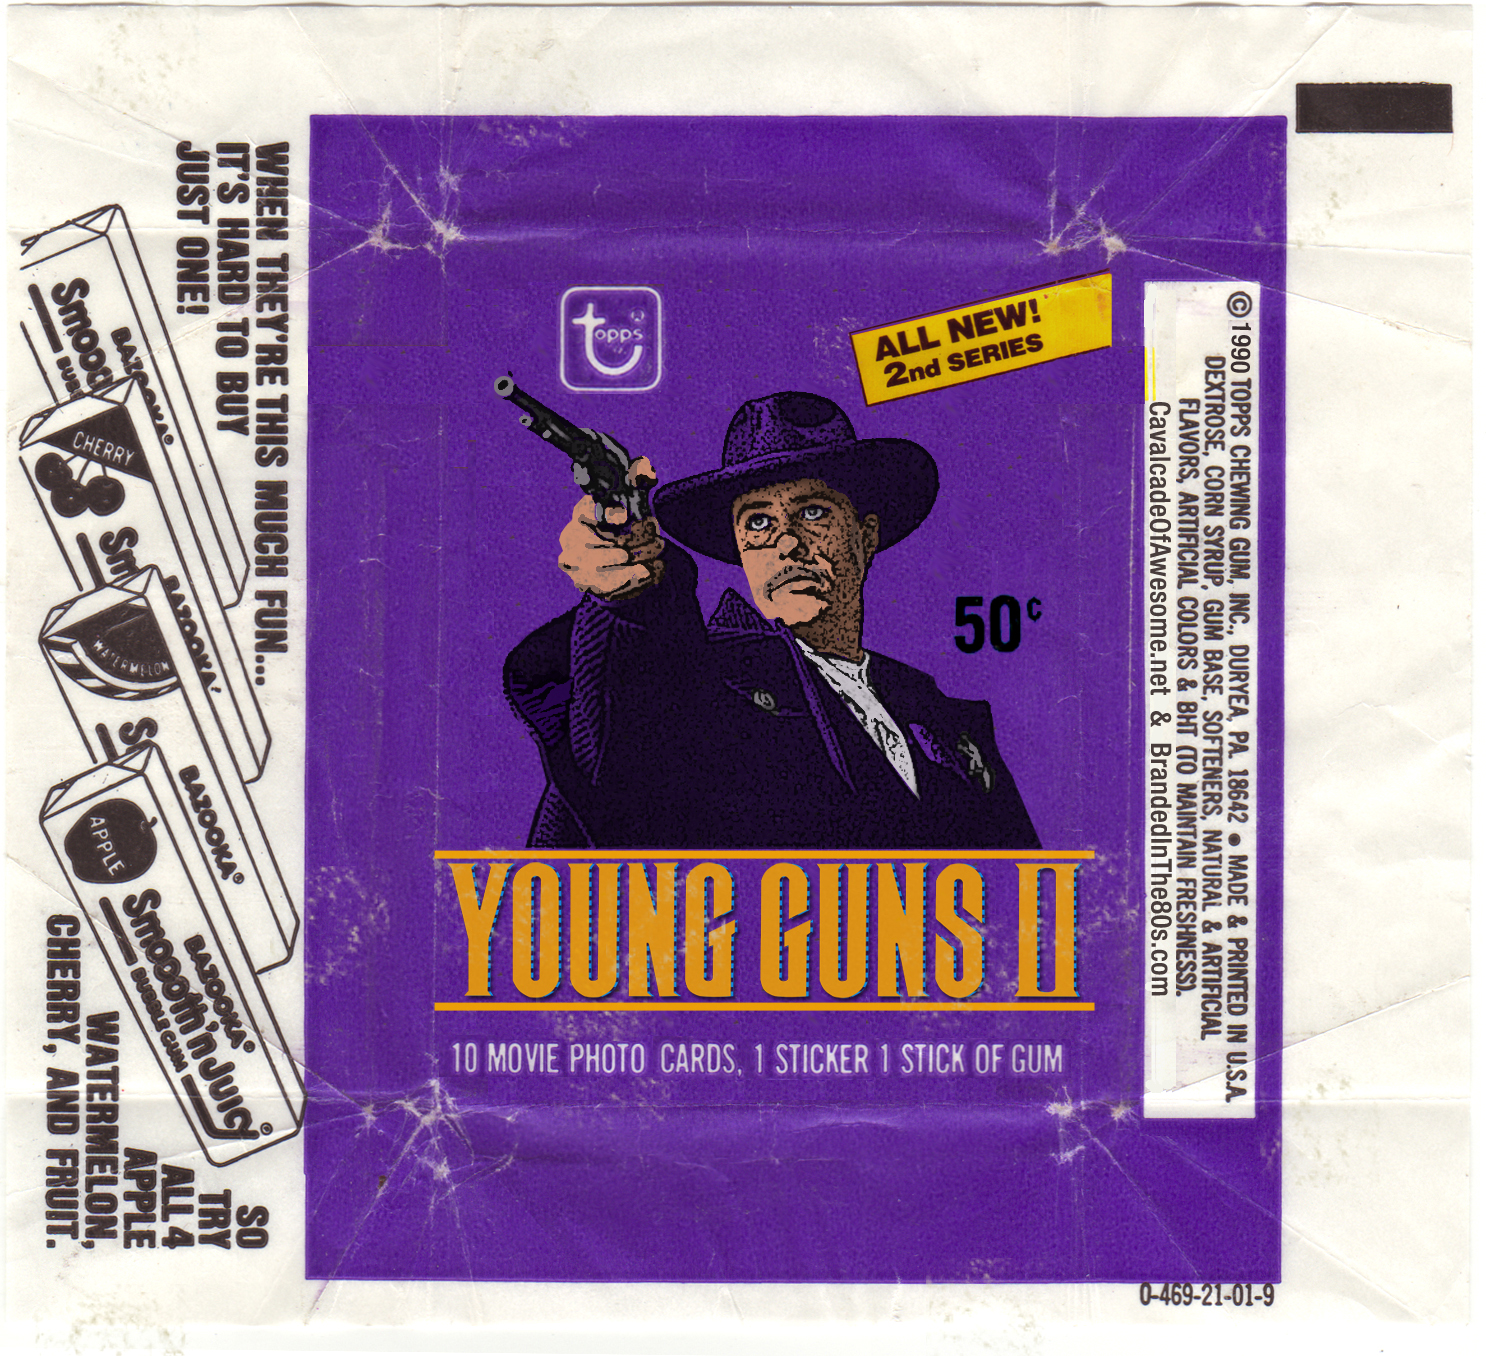 YG2 wax wrapper 2